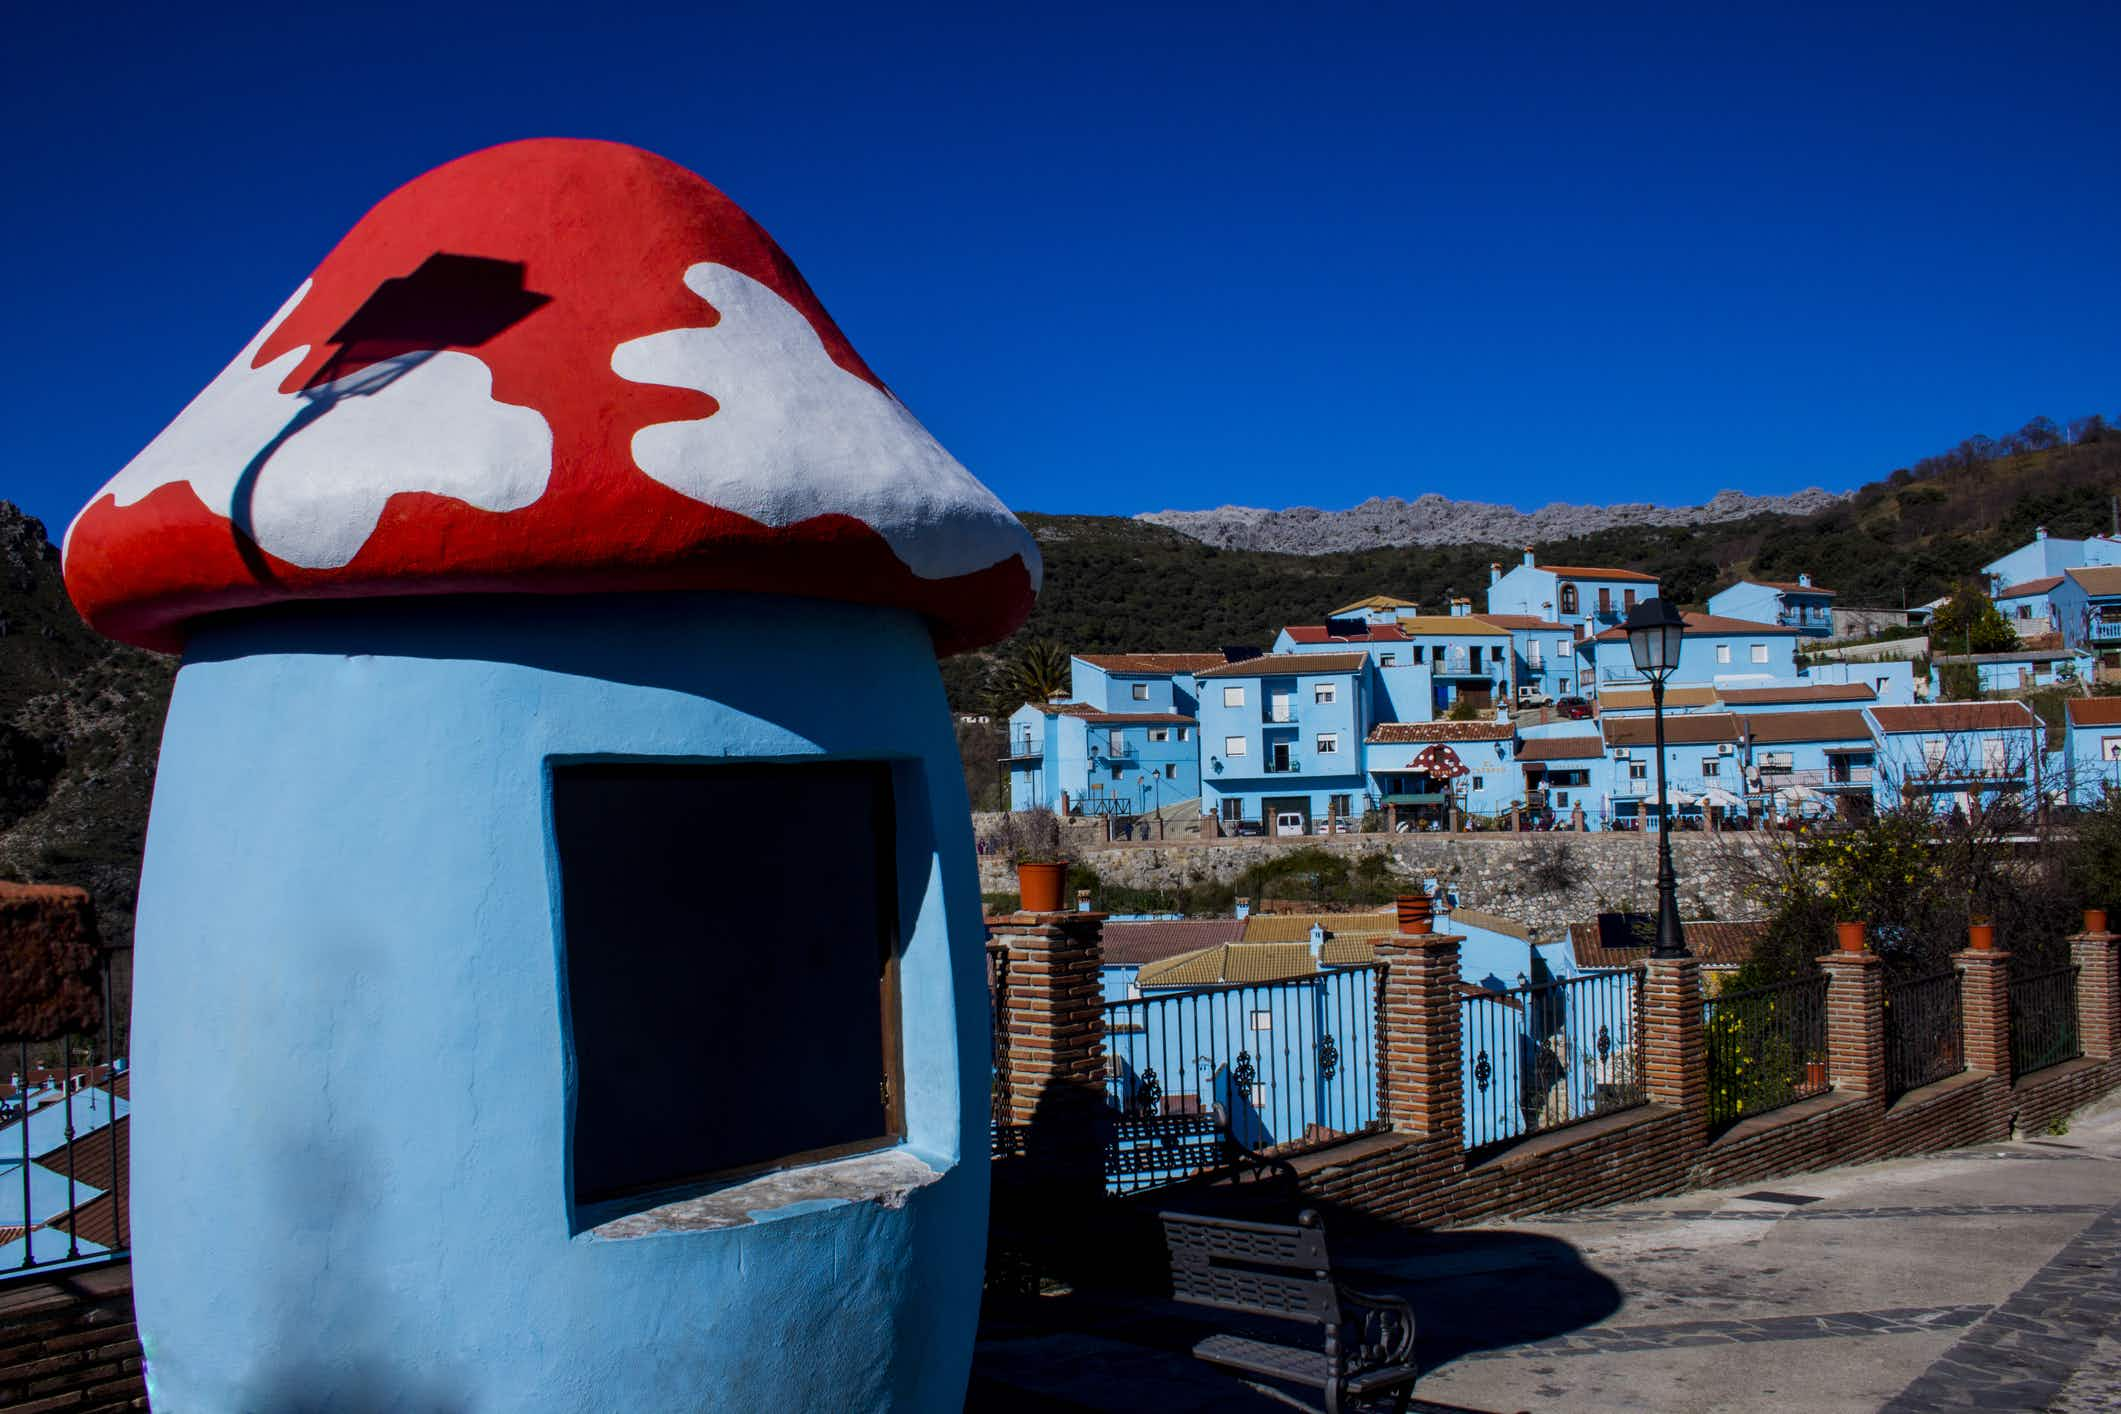 Smurfs set for eviction from Spain's famous bright blue village of Júzcar